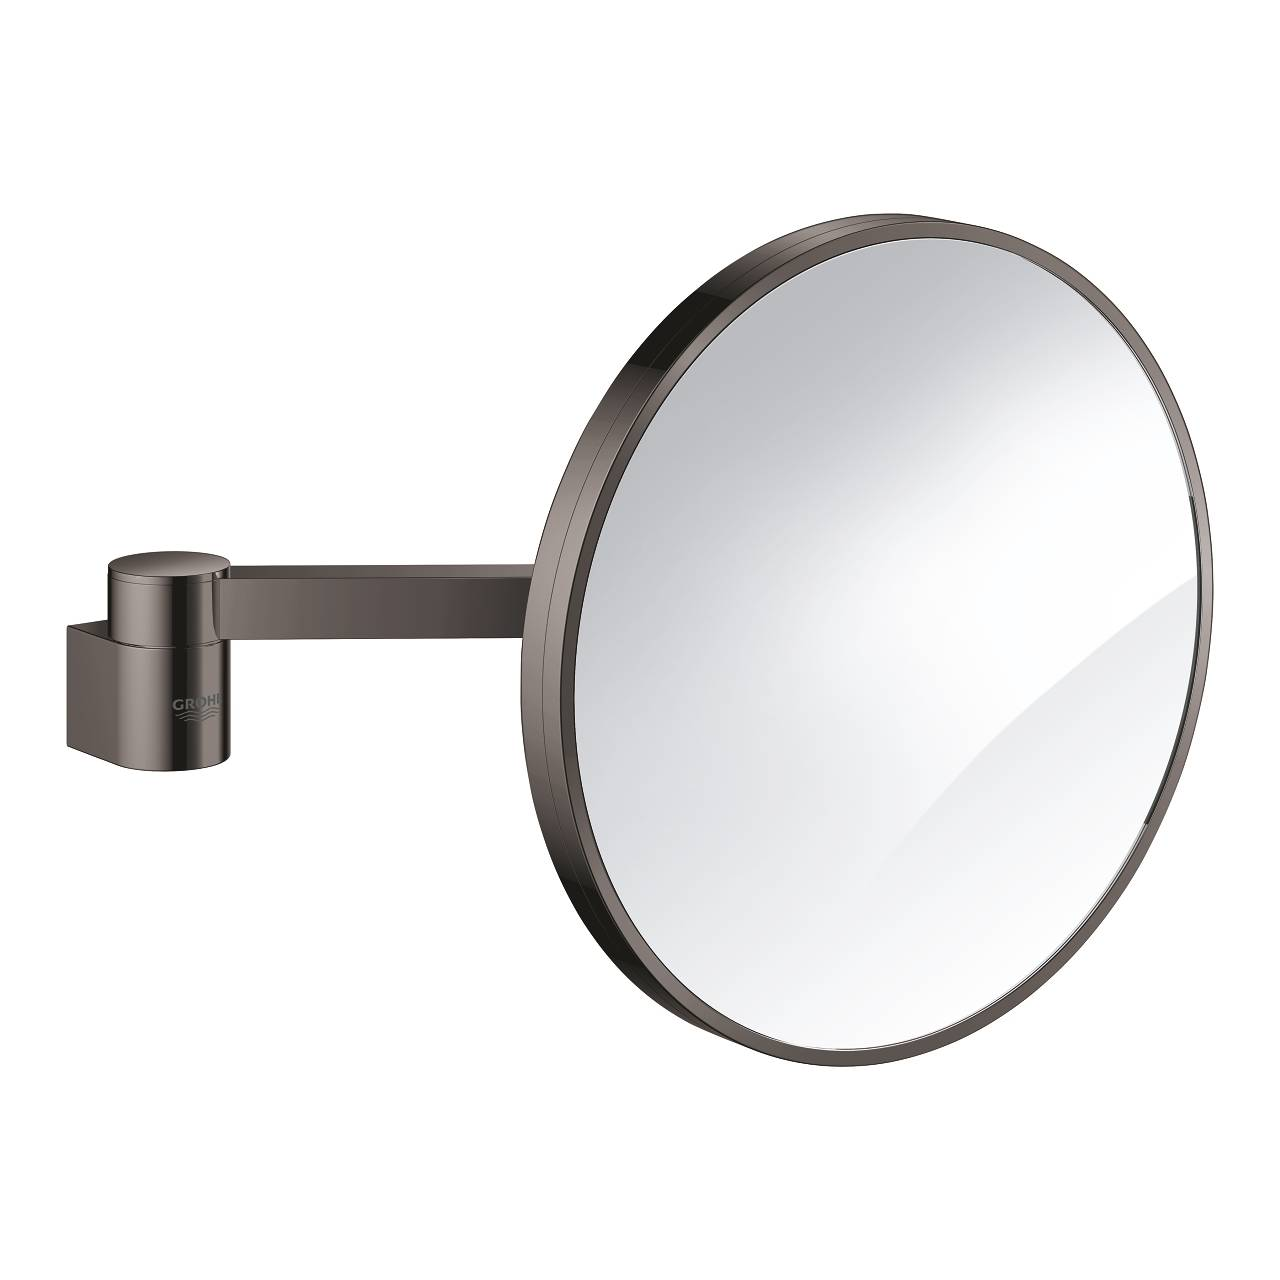 Grohe Selection - Miroir cosmétique mirrored / hard graphite